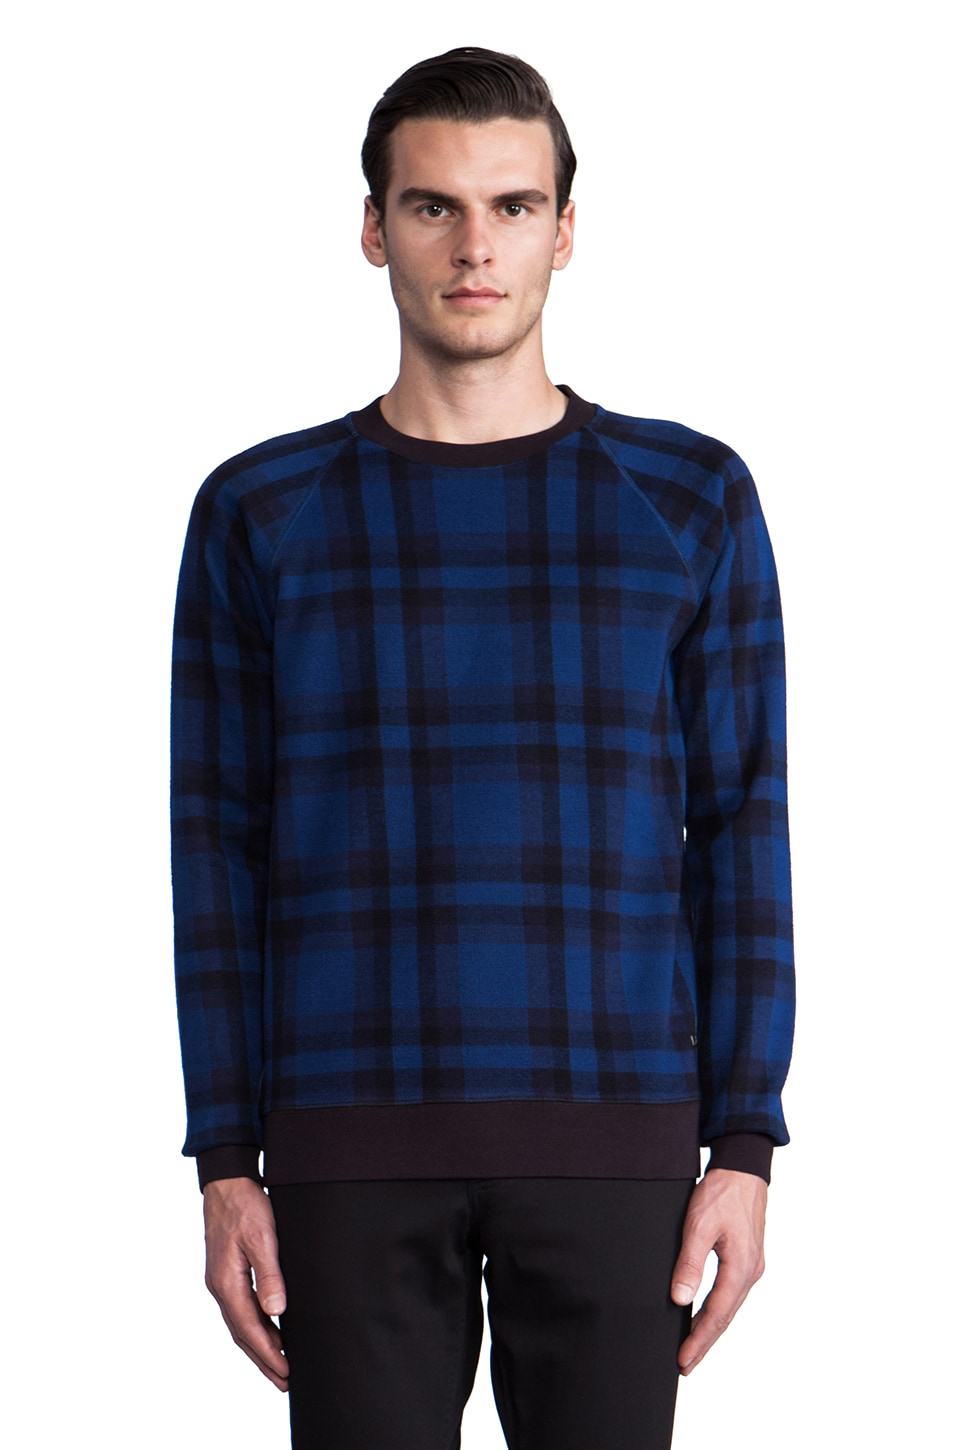 Marc by Marc Jacobs Sheffield Plaid Sweatshirt in Icelandic Blue Multi